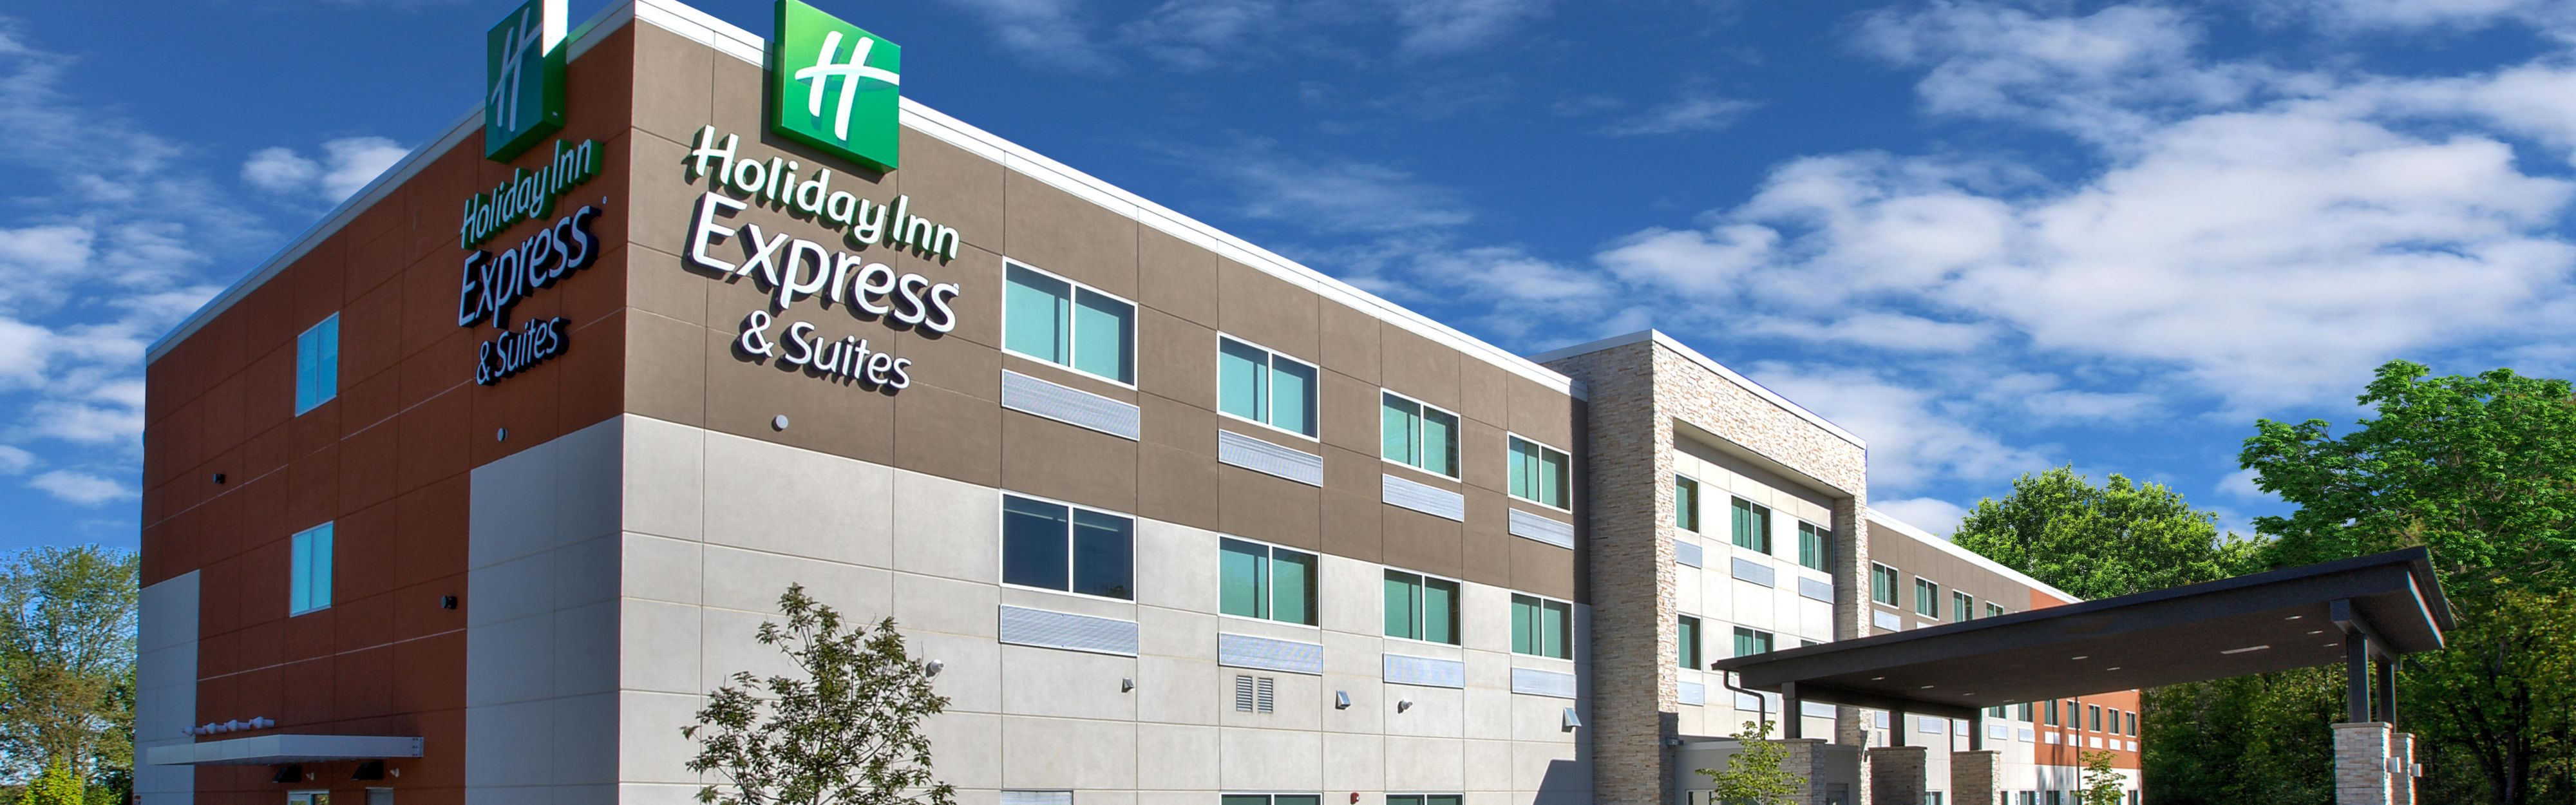 Holiday Inn Express New Castle image 0